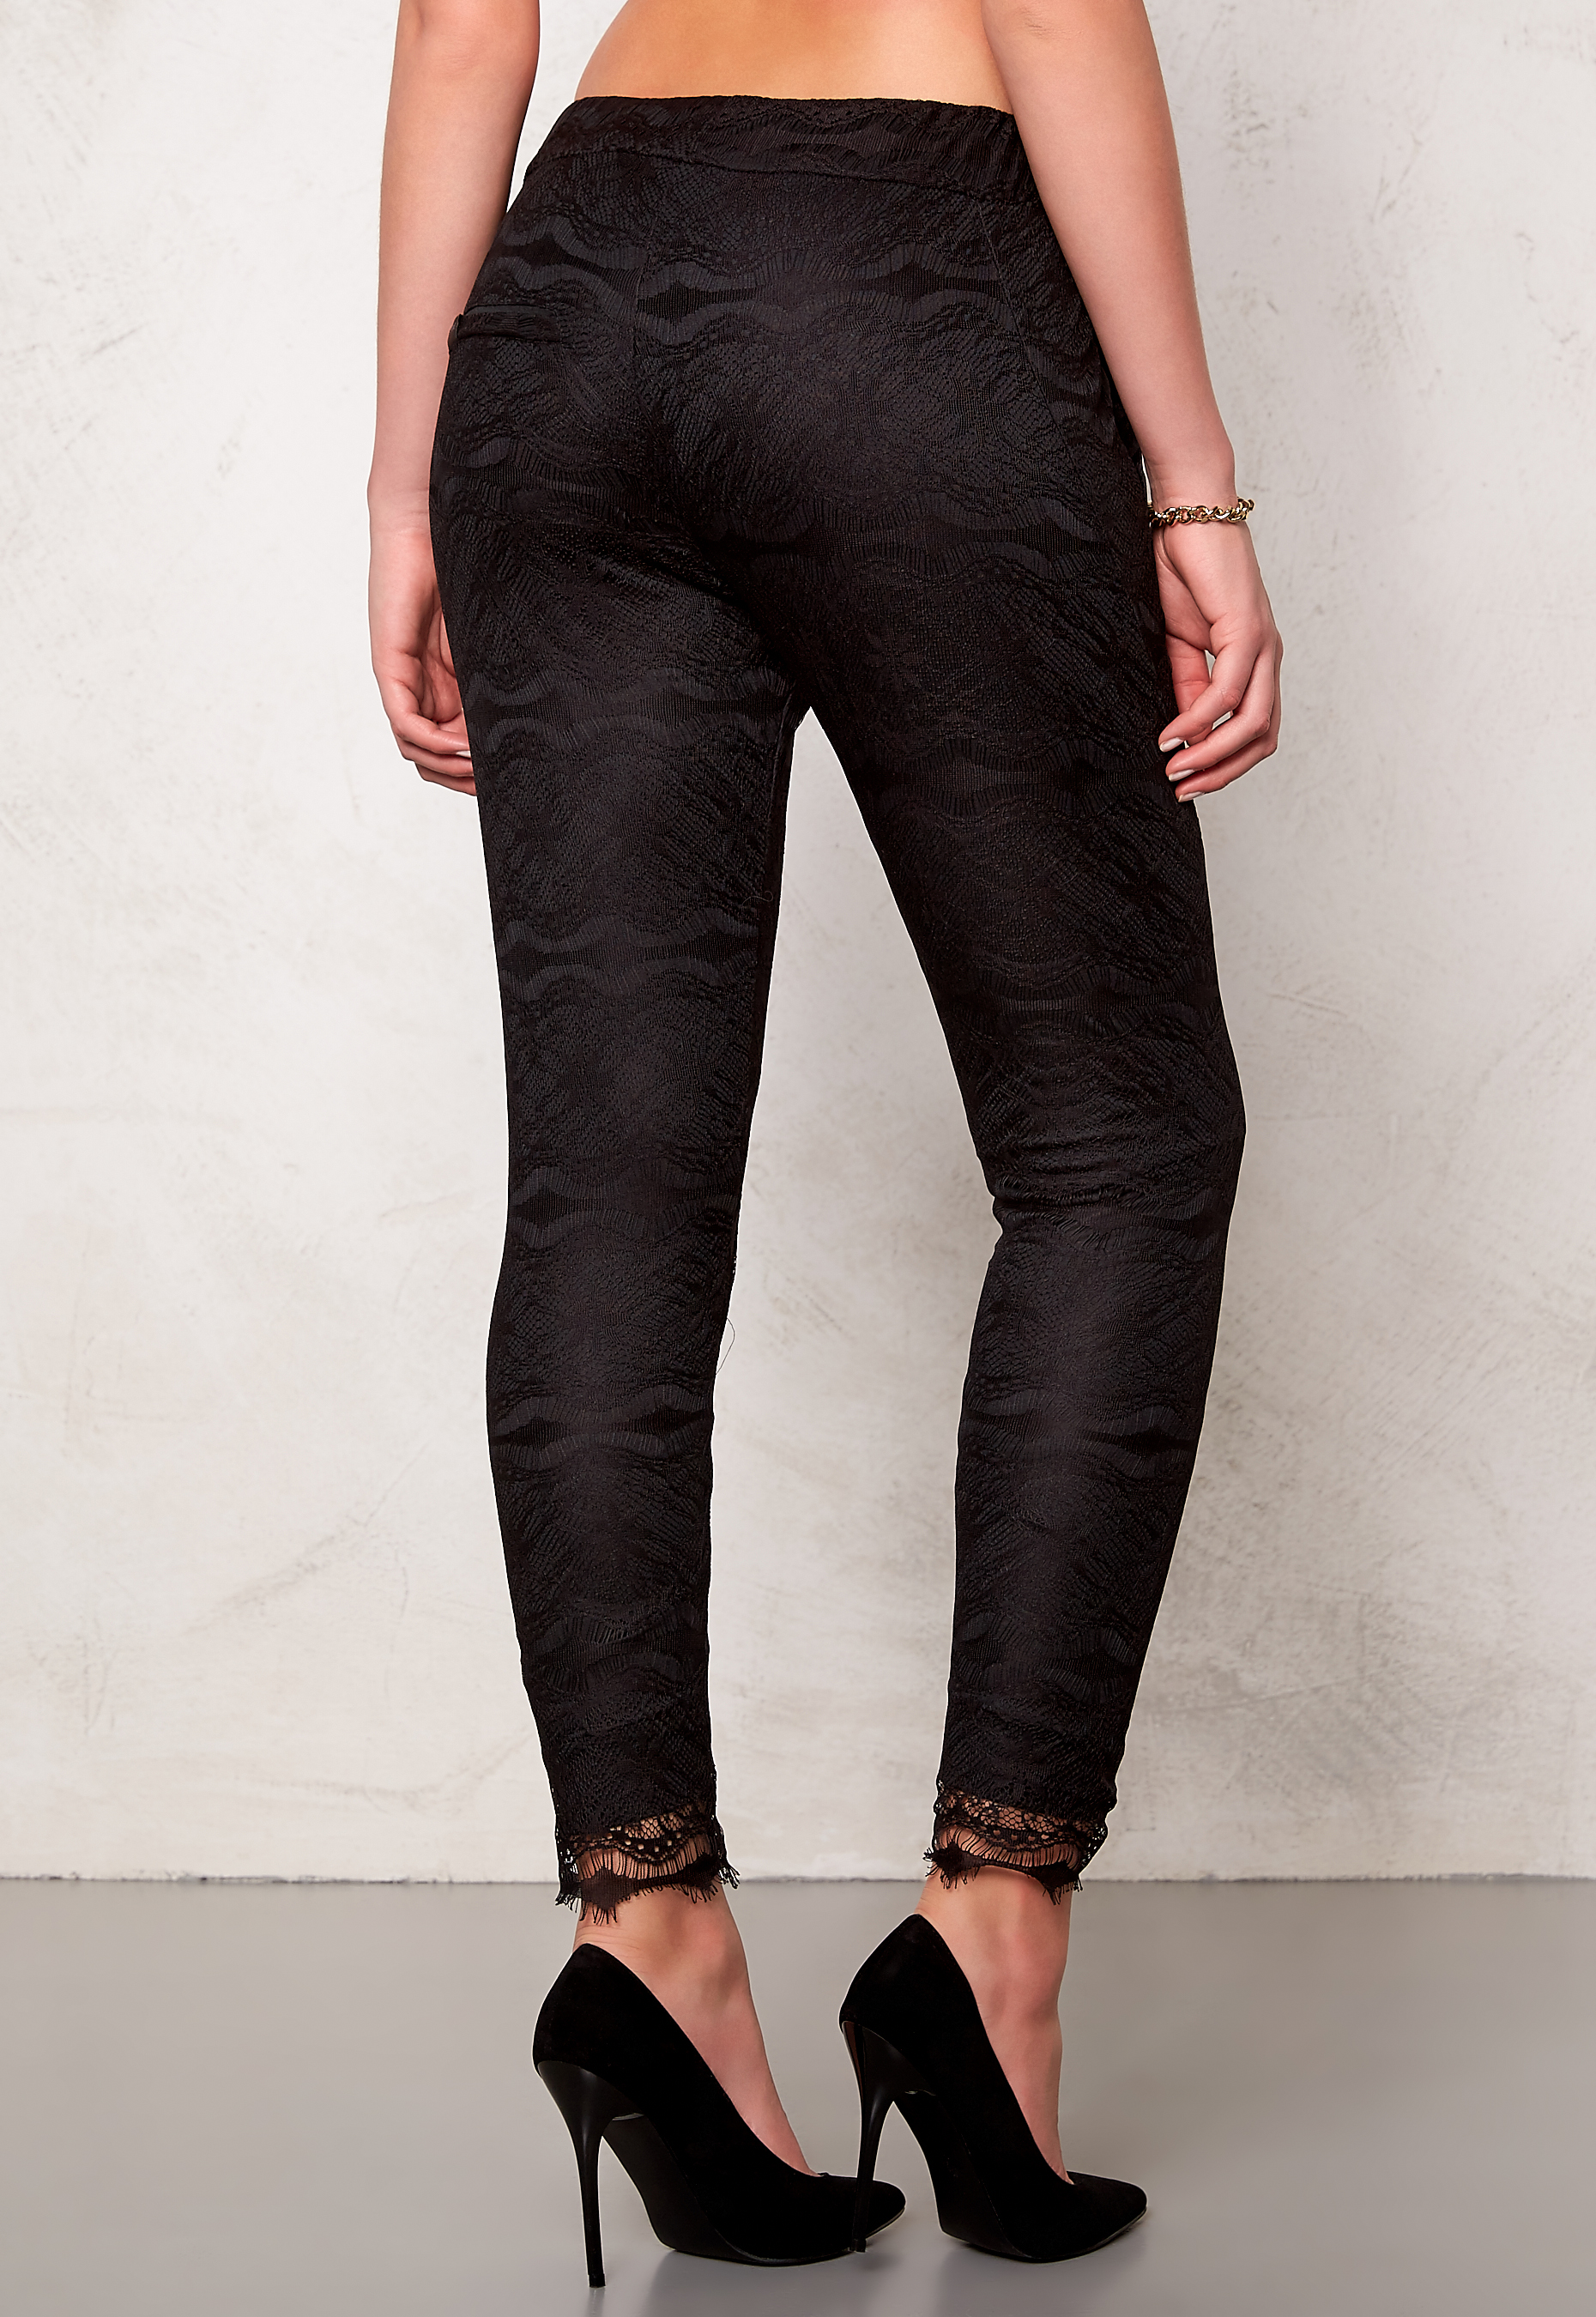 2nd One Miley 070 Pants Black Scallop Bubbleroom